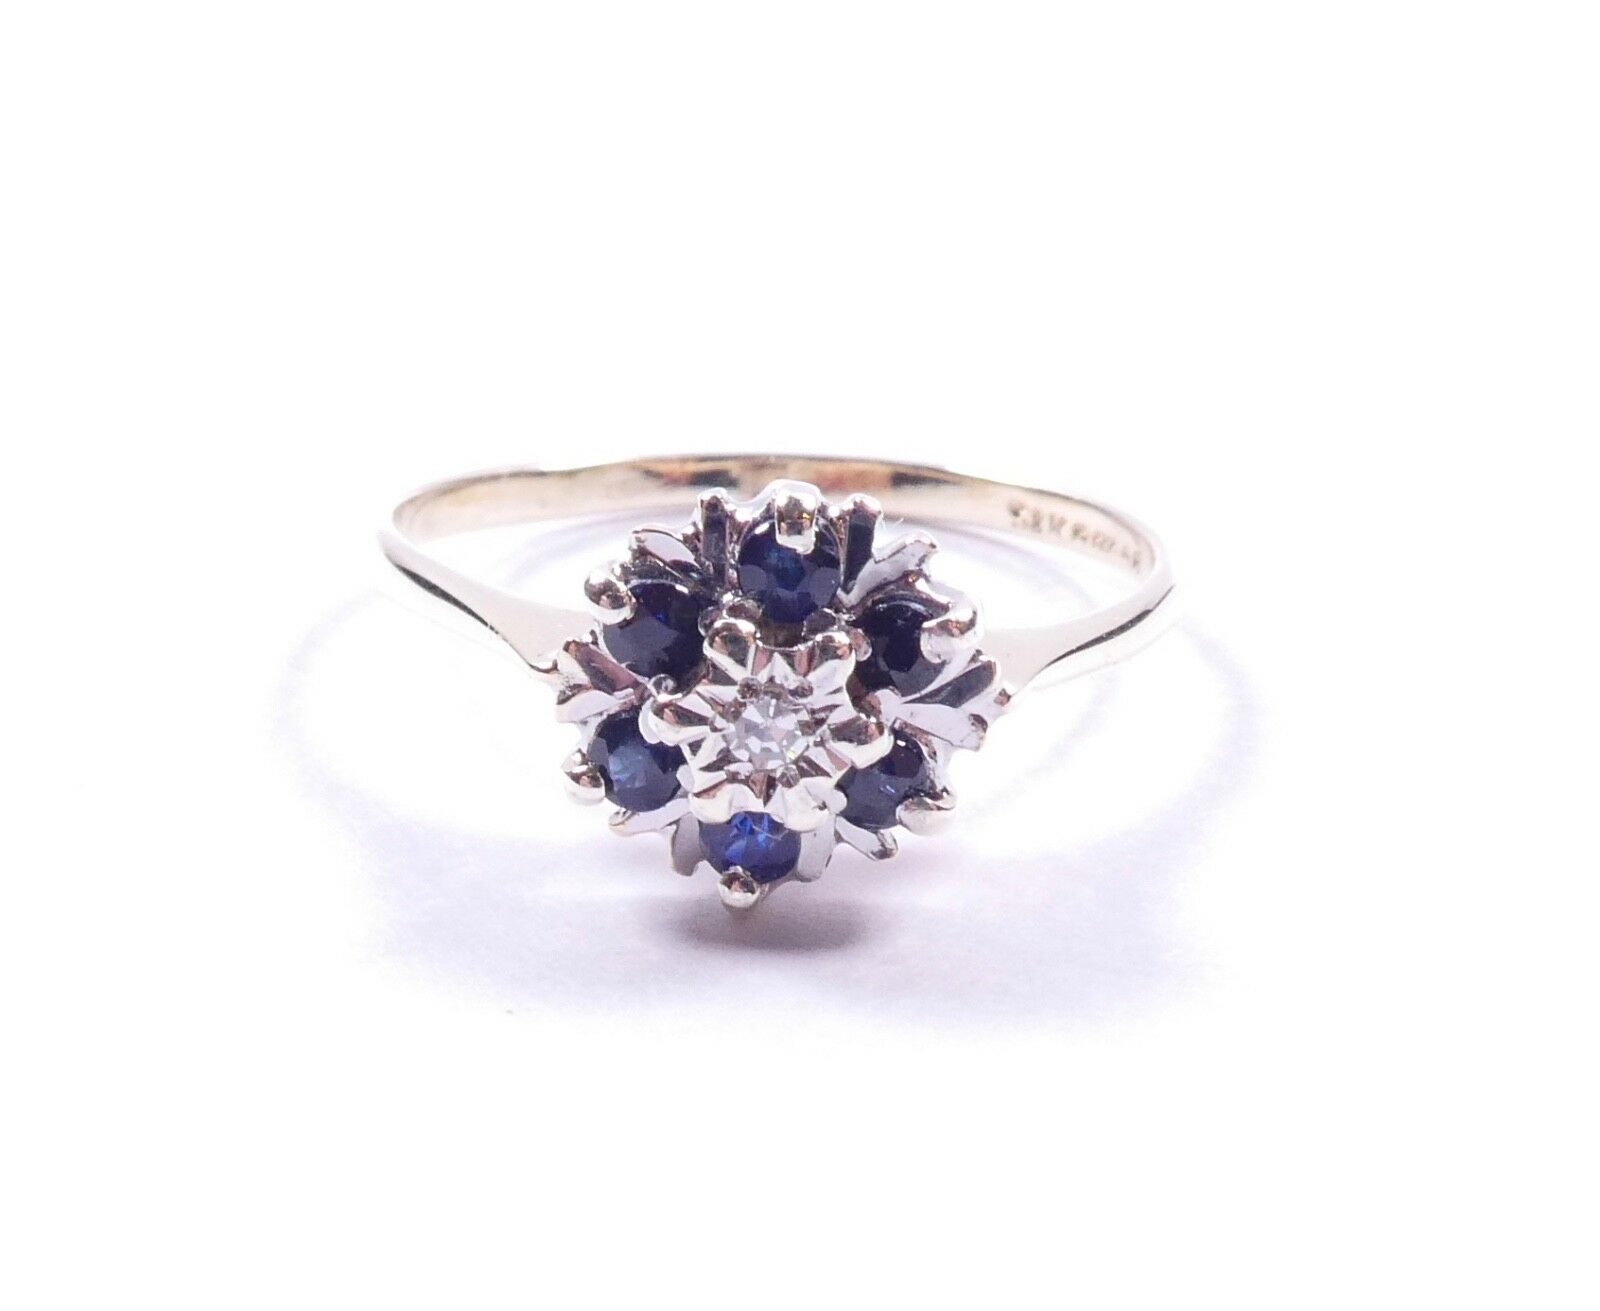 Sapphire and diamond cluster ring 9 carat yellow gold P1 2